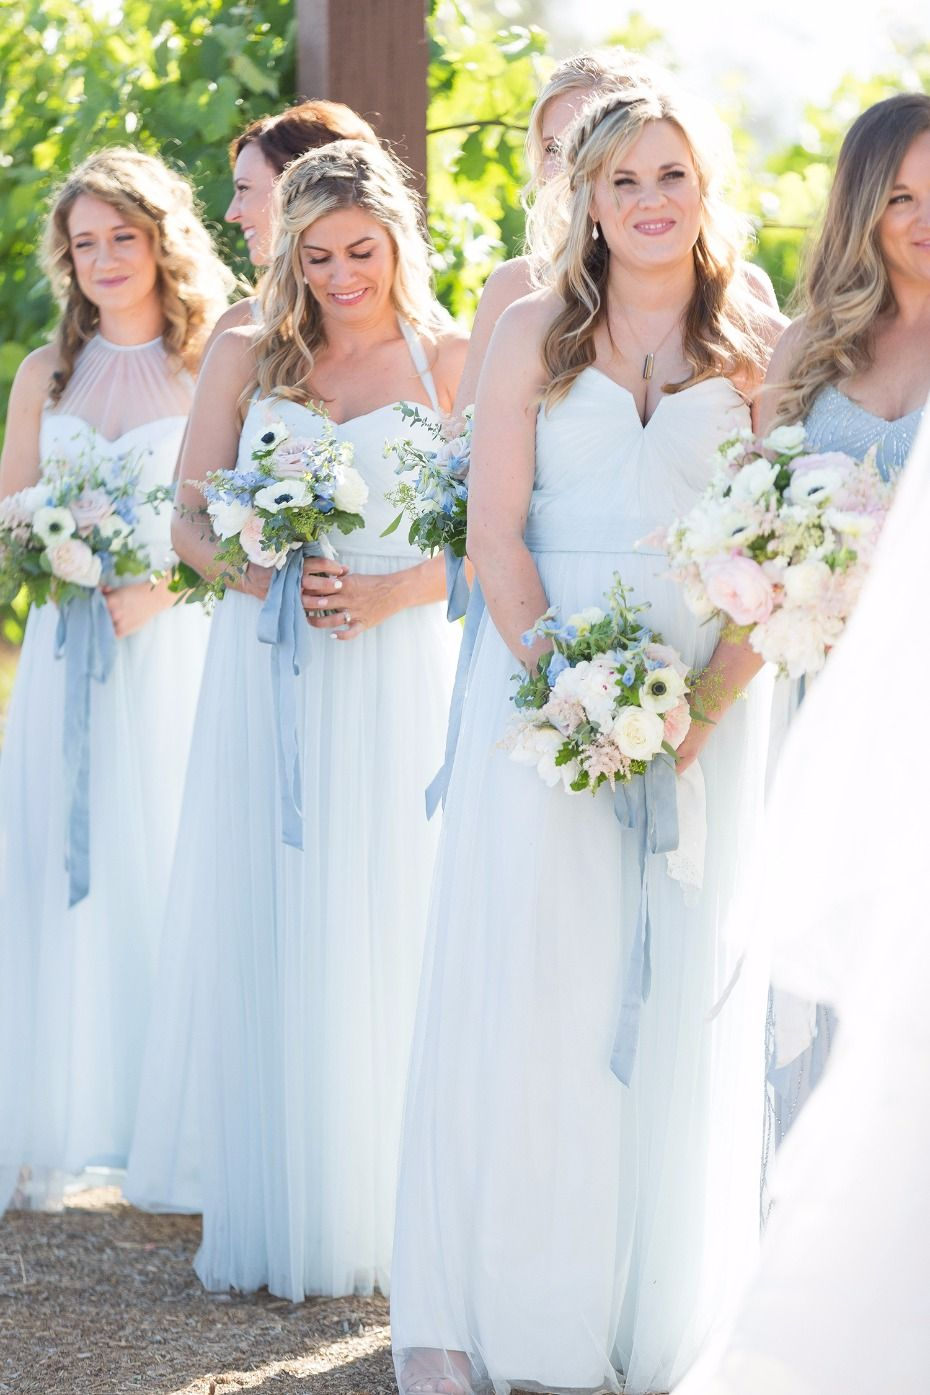 Get That Spring Feeling At This Whimsical Winery Wedding Light